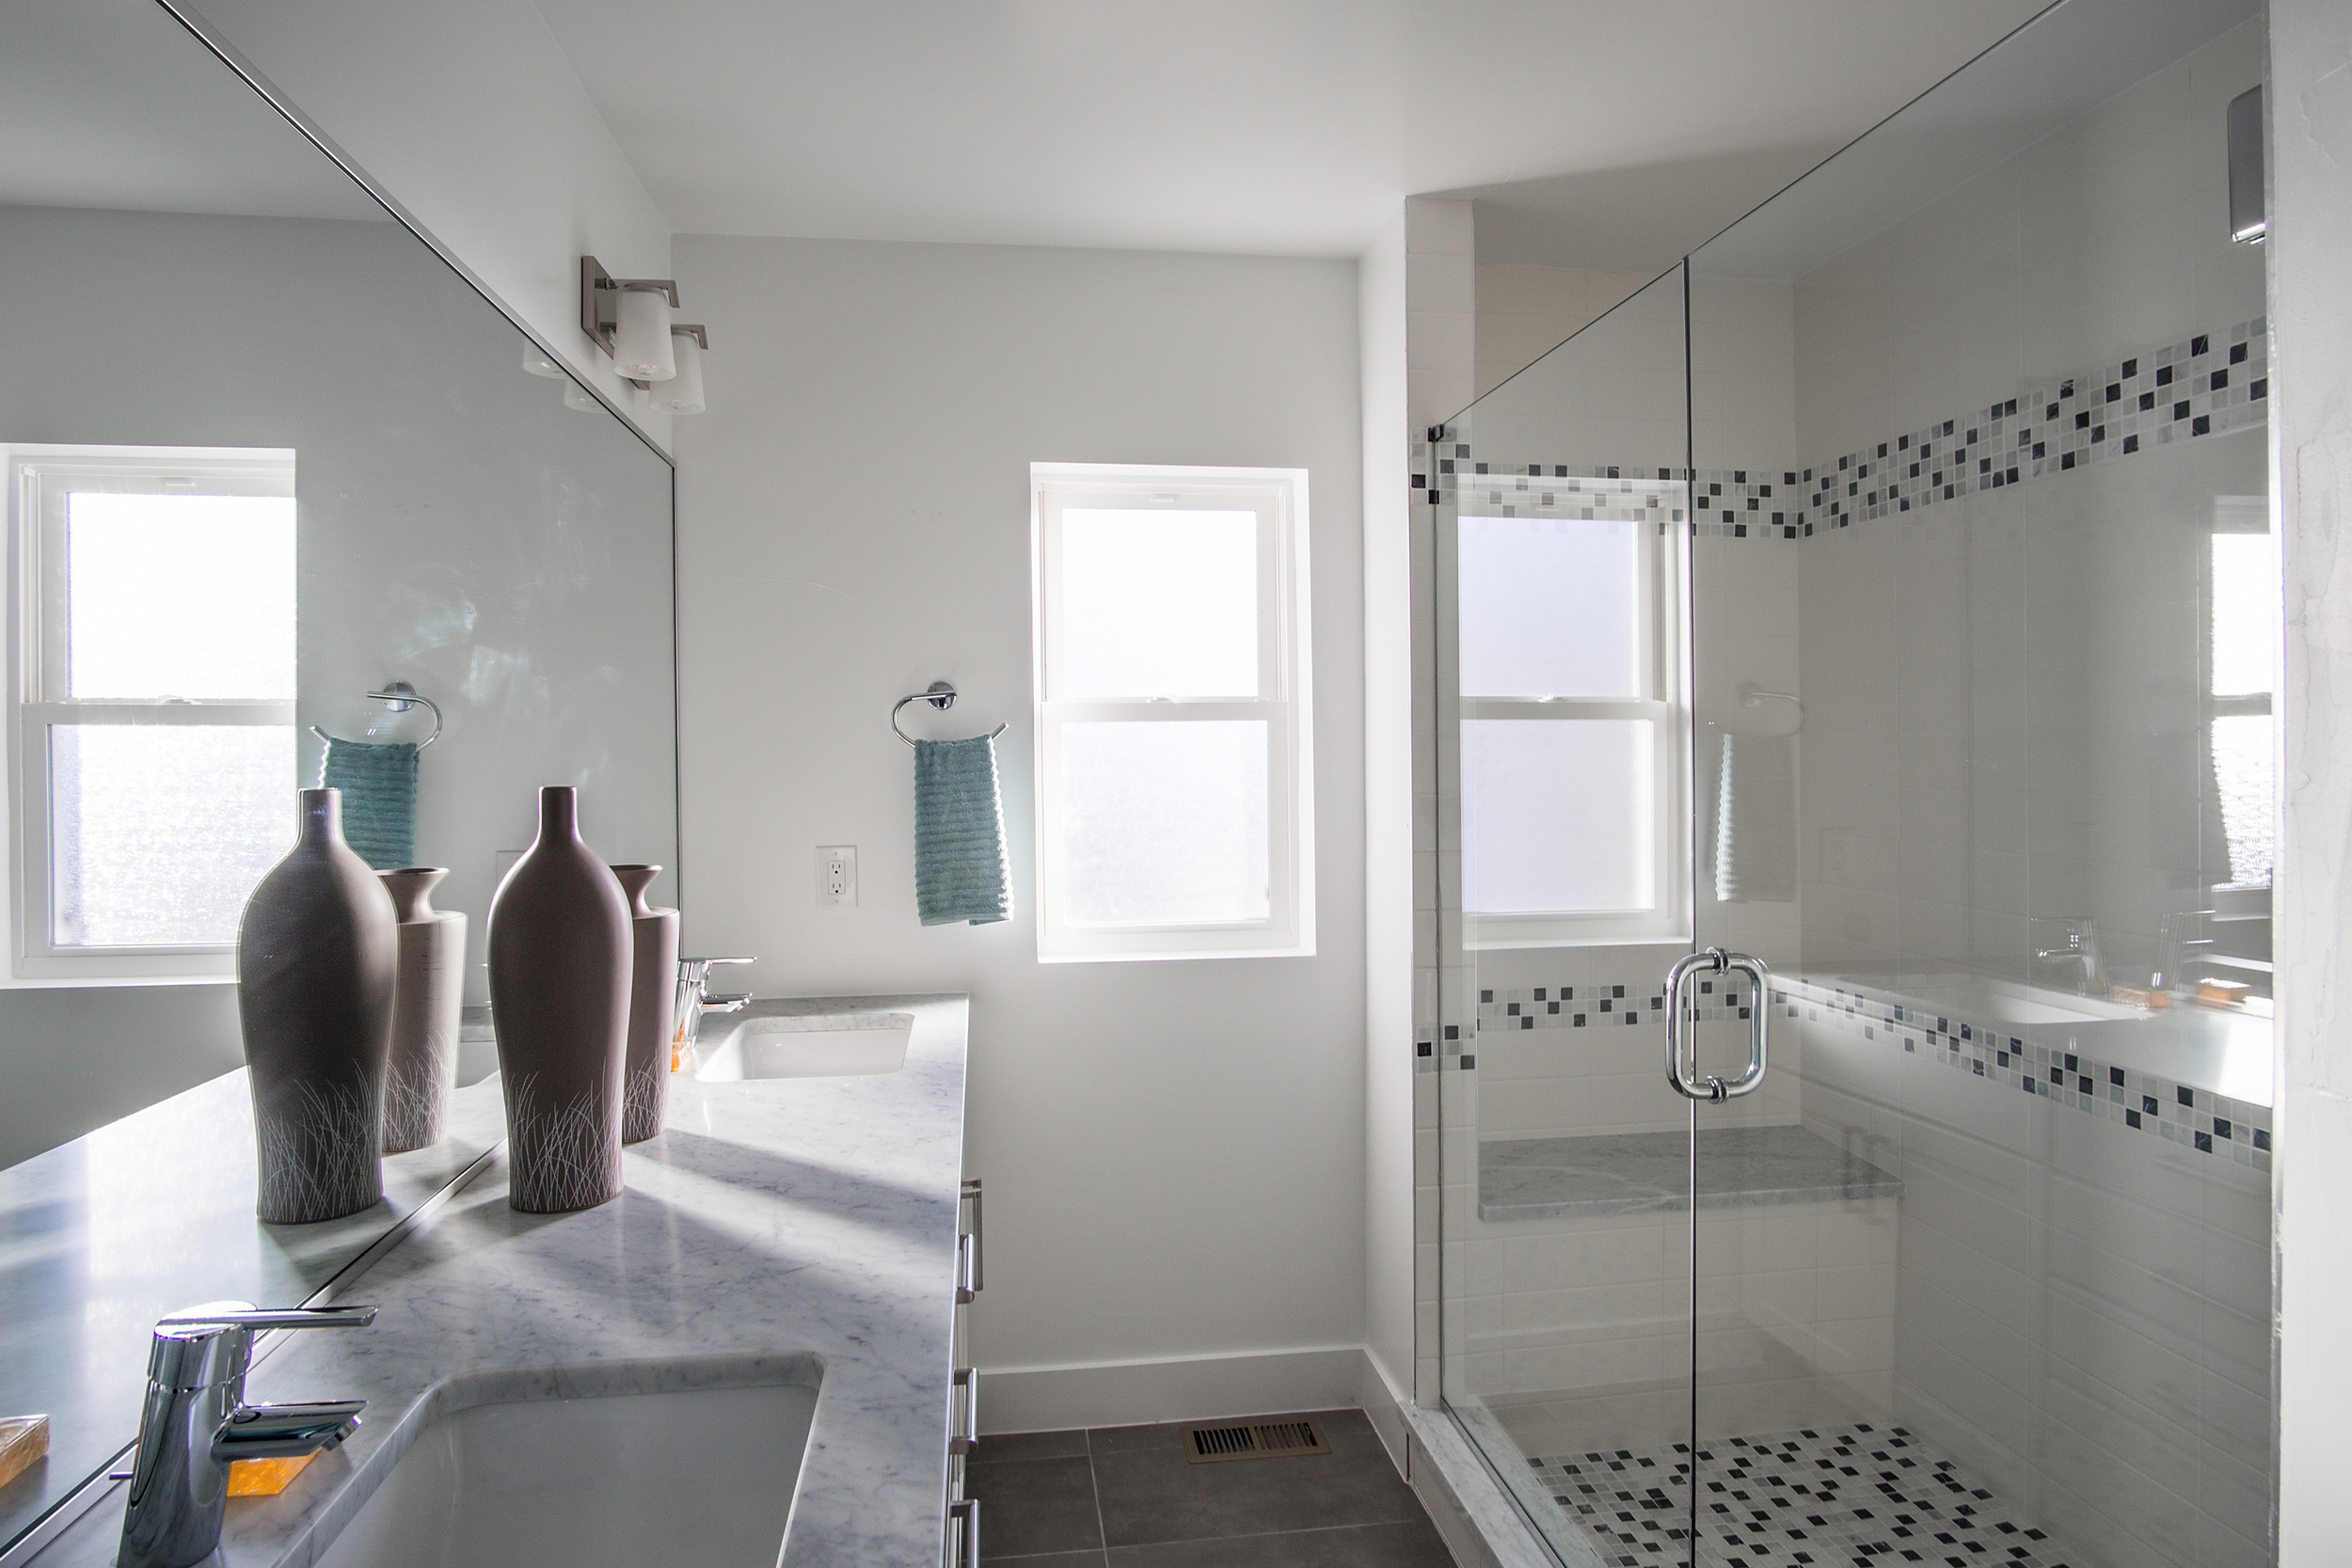 Bathroom1_high_2101951.jpg